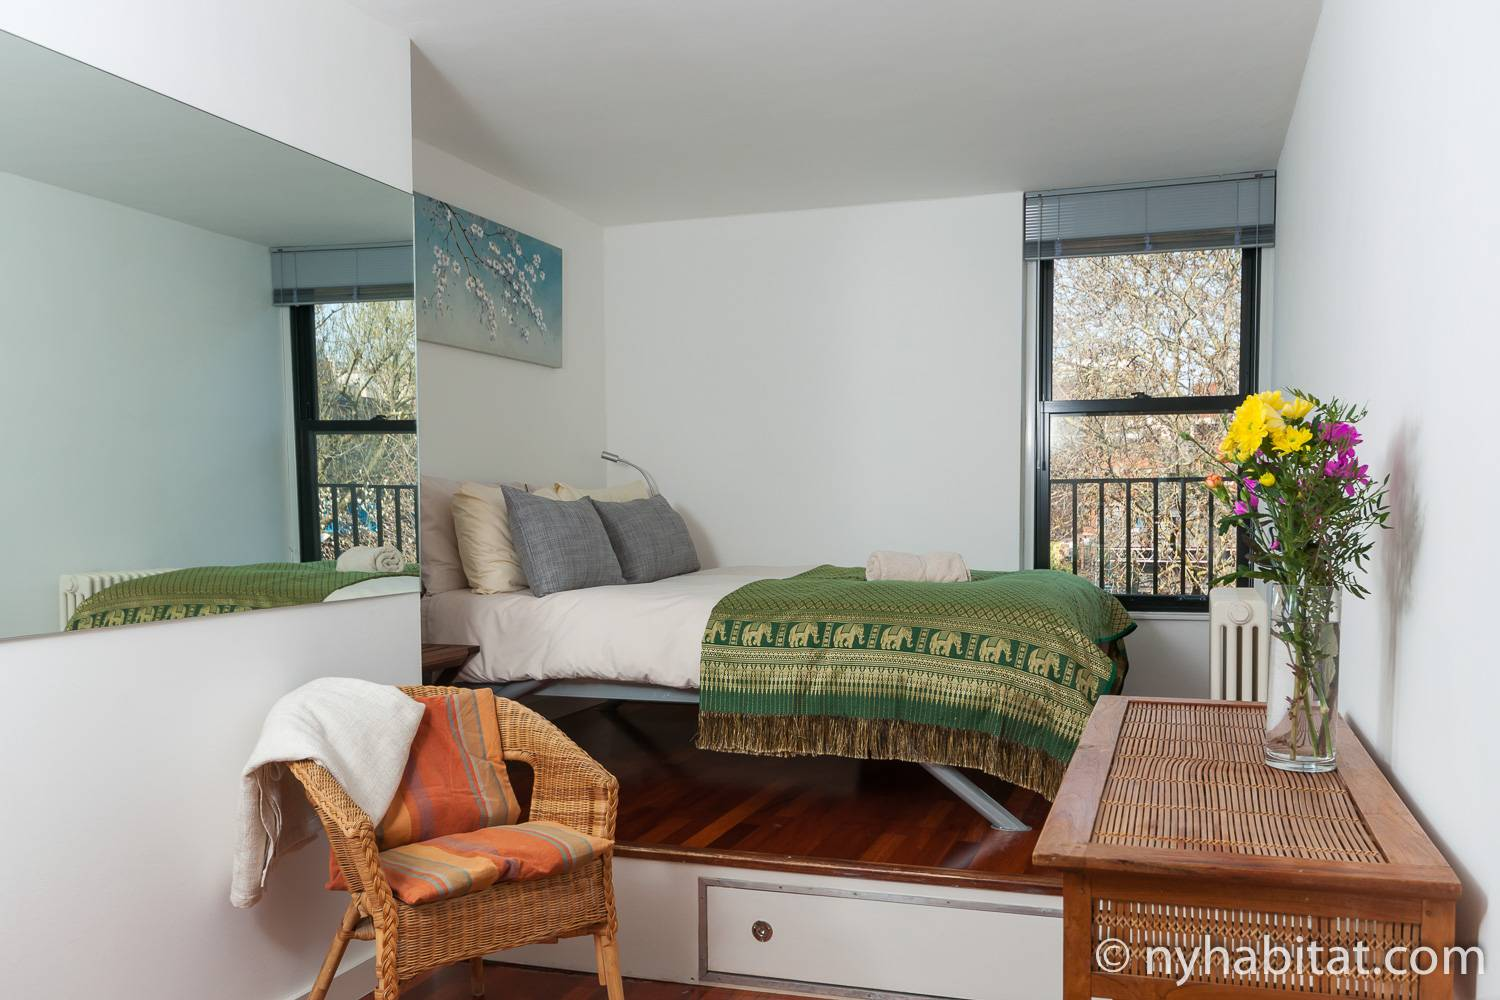 Image of the bedroom of 1-bedroom rental (LN-1906) with accents of green and orange for an autumn-themed room.